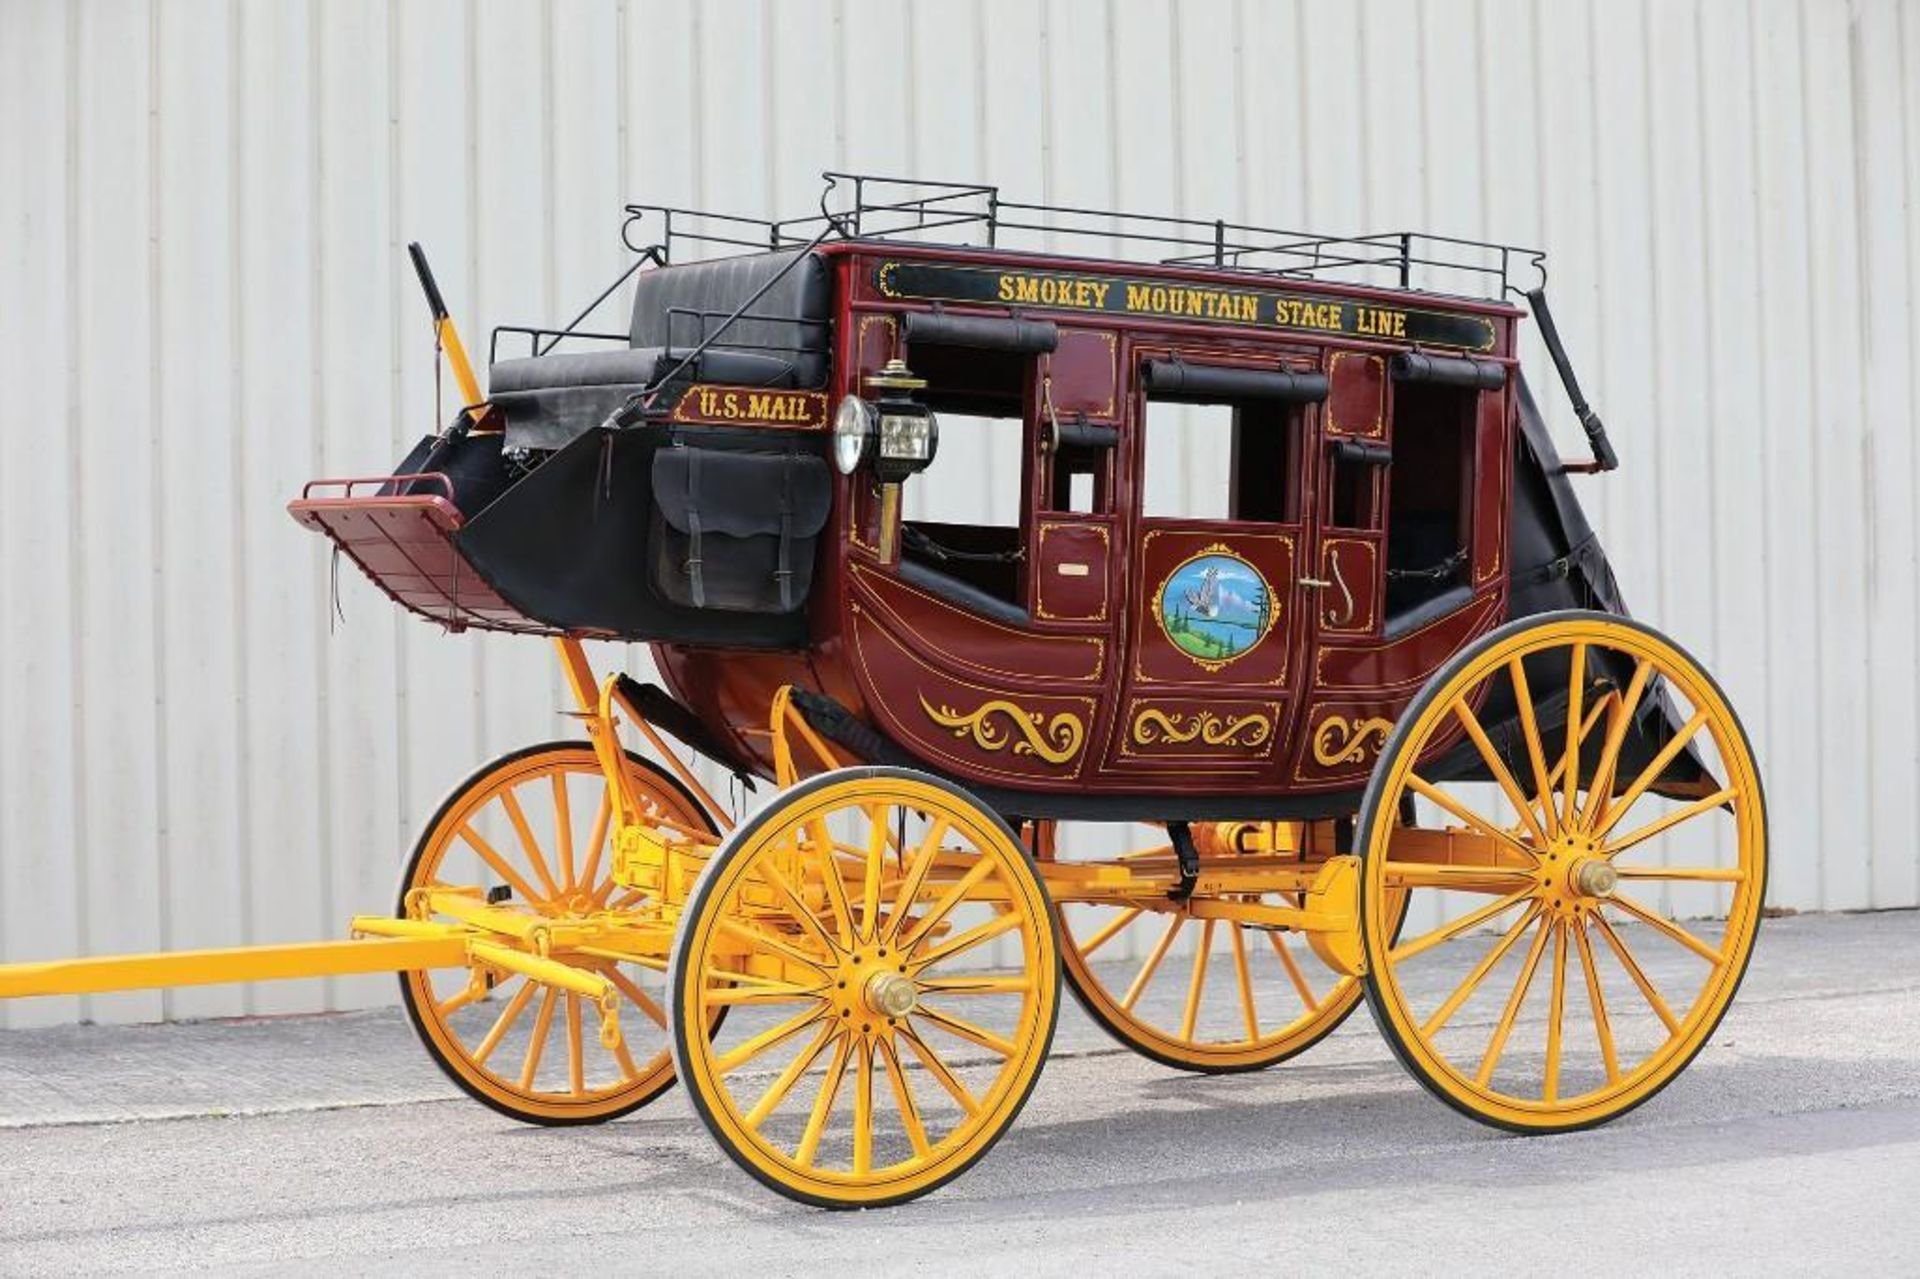 LATHAM Stagecoach, Built in Fortuna, Missouri in 2001, Mint Condition, Hooked Twice for Parades - Image 2 of 4